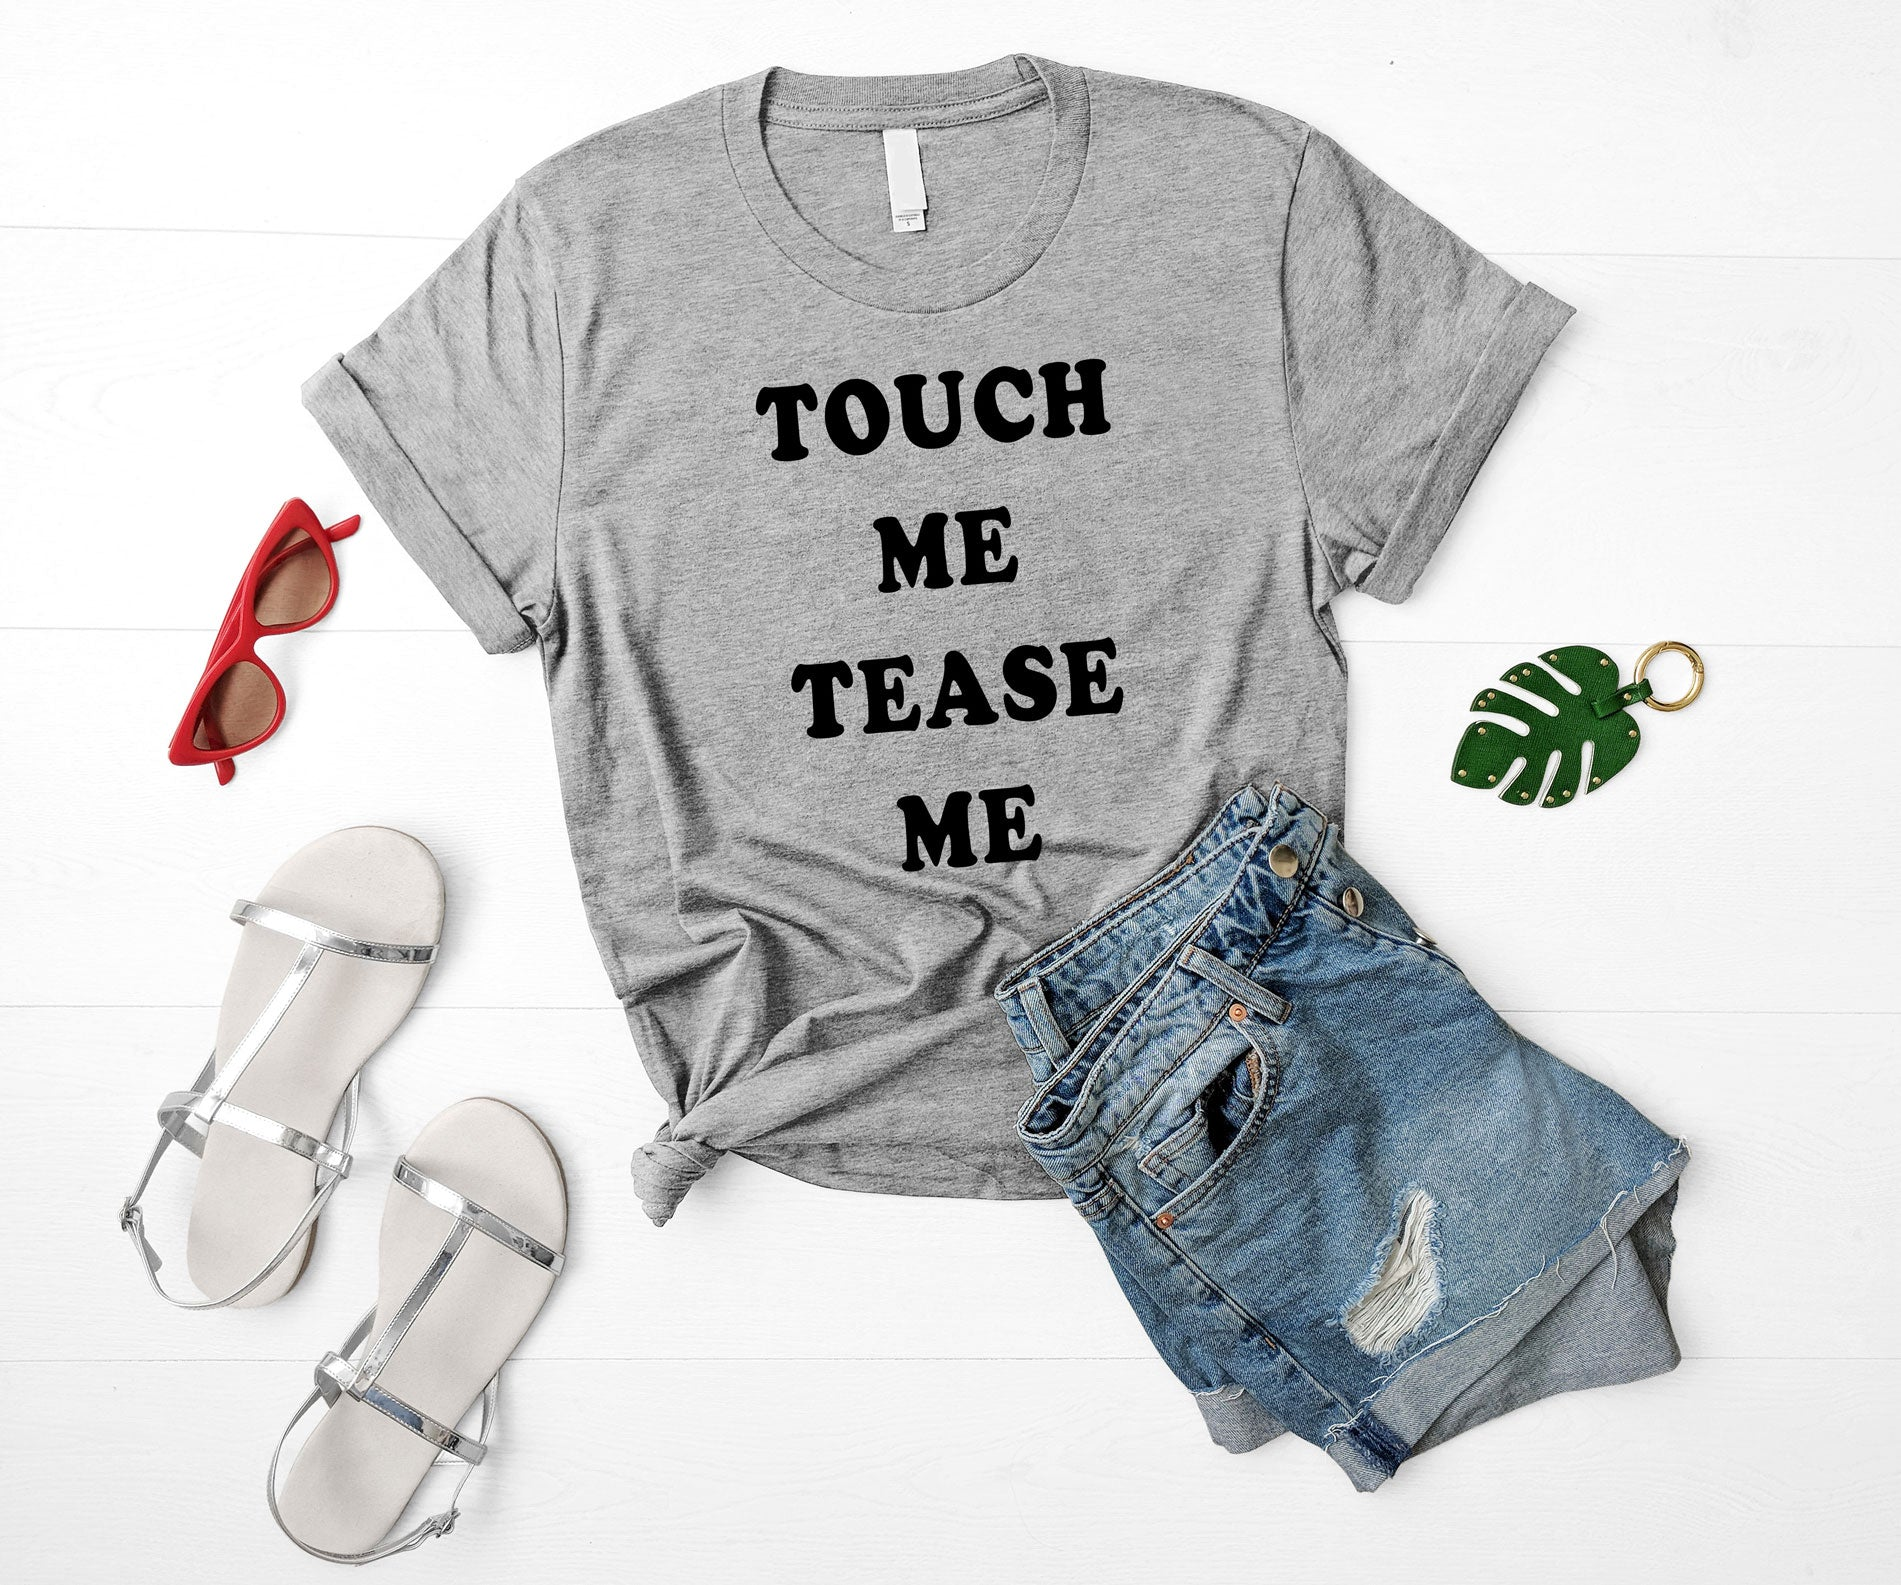 Touch Me Tease Me Tee-Luxury Brand LA - Luxury Brand LA - Shop Latest Trends and Hottest Apparel from Luxury Brand LA